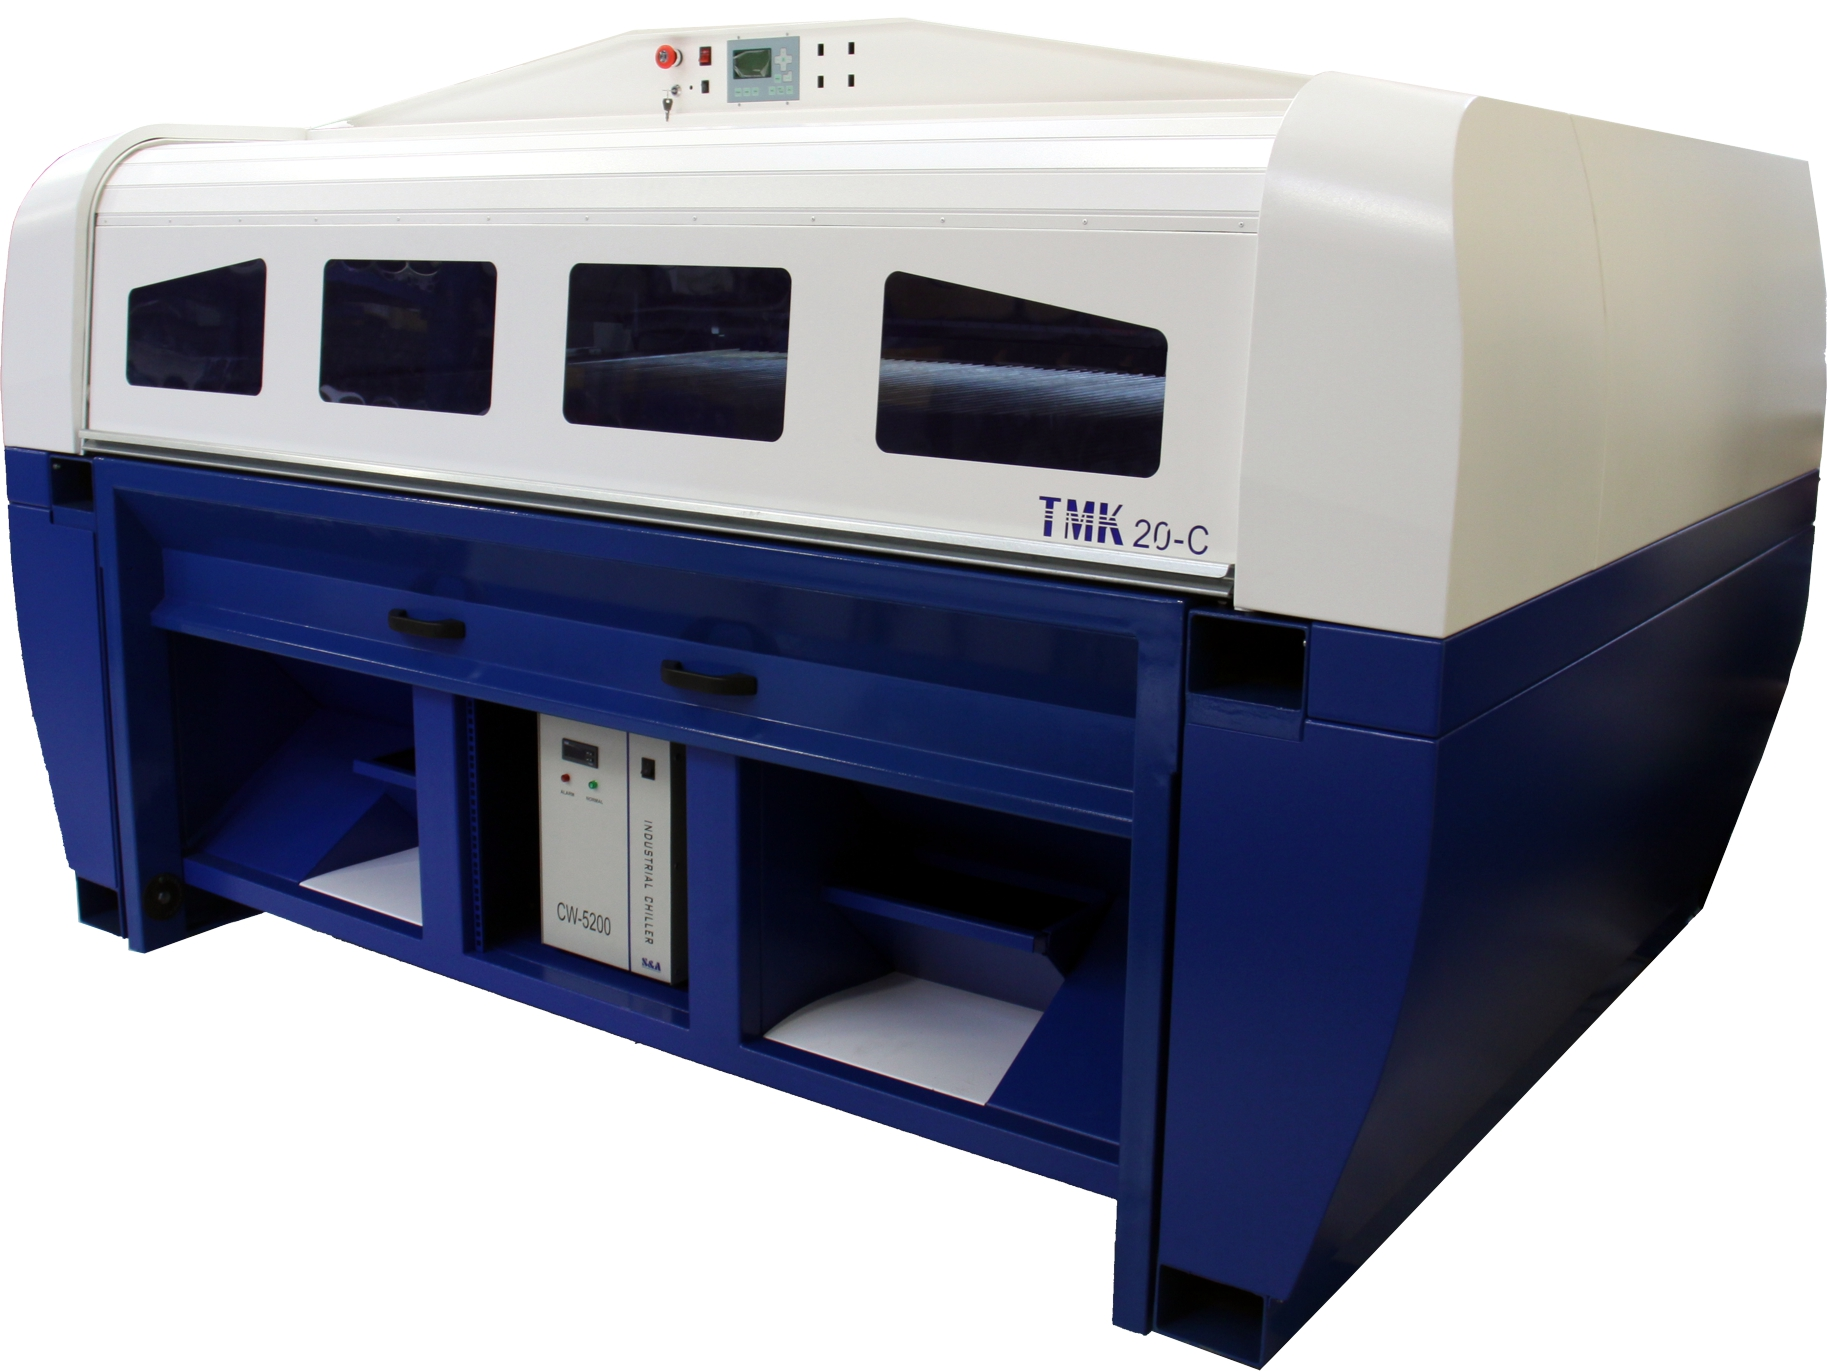 Laser Cutting Machine For Sale From Iem Uk